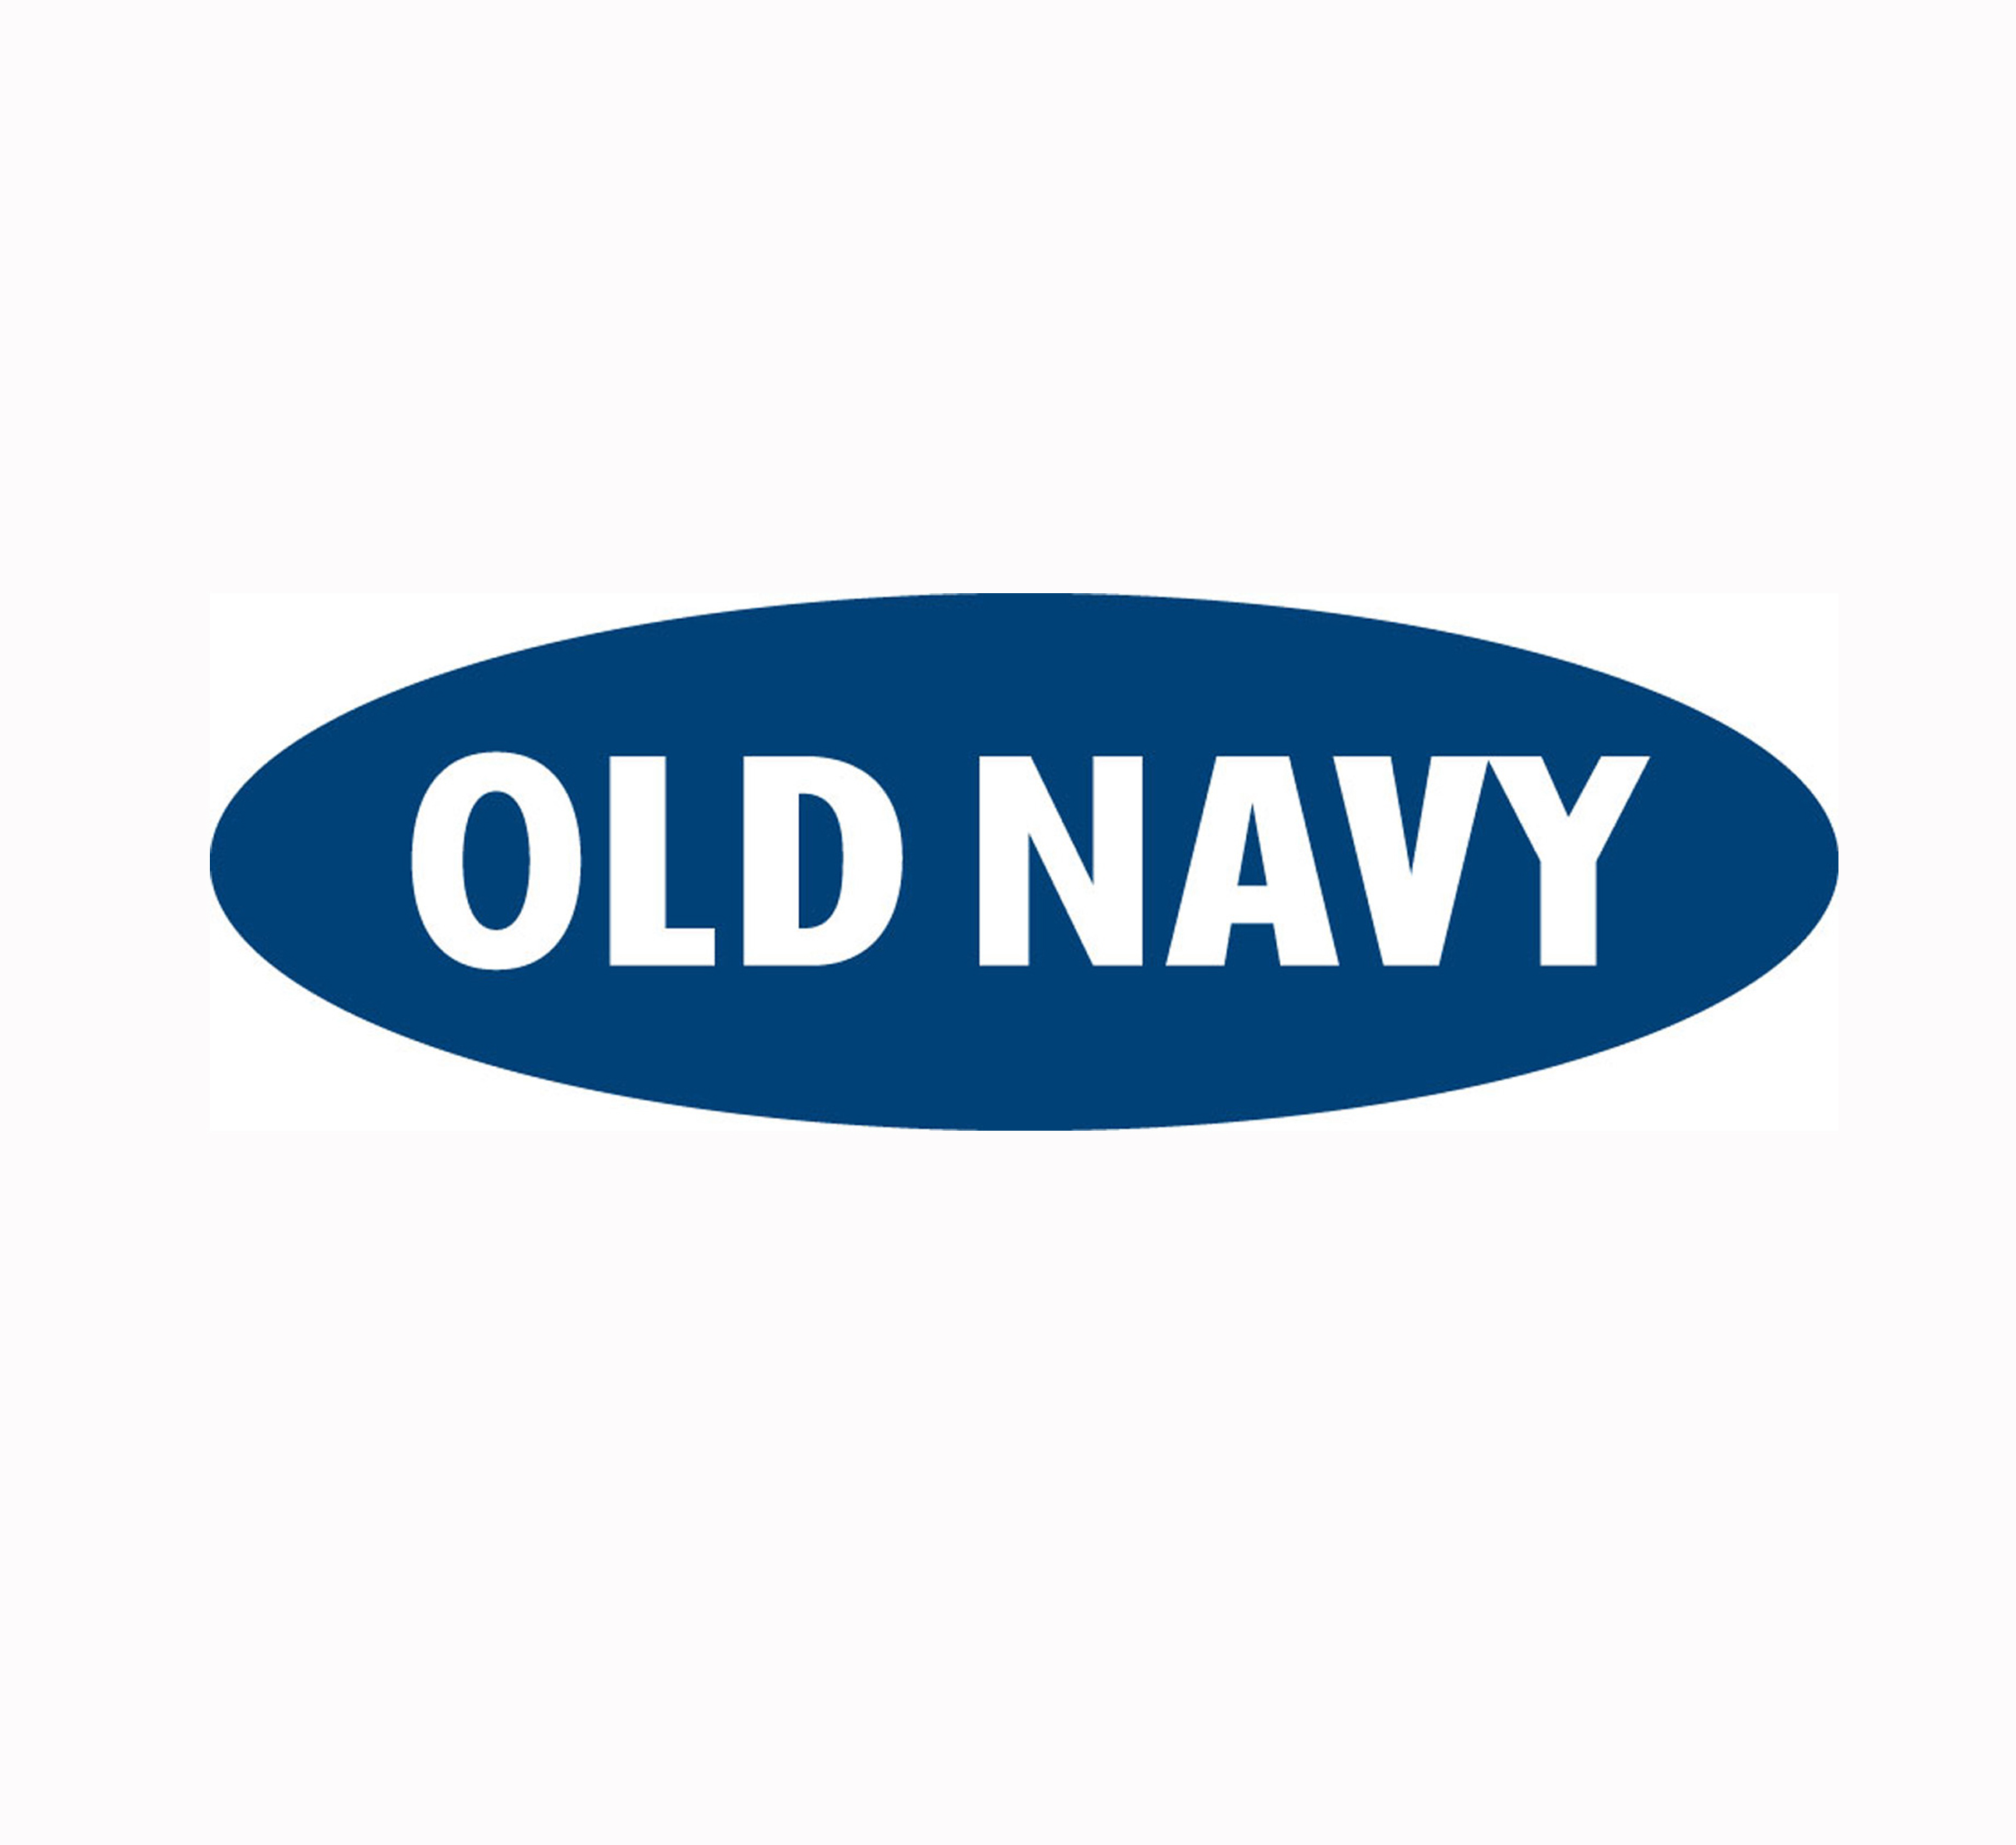 Old Navy Clipart.